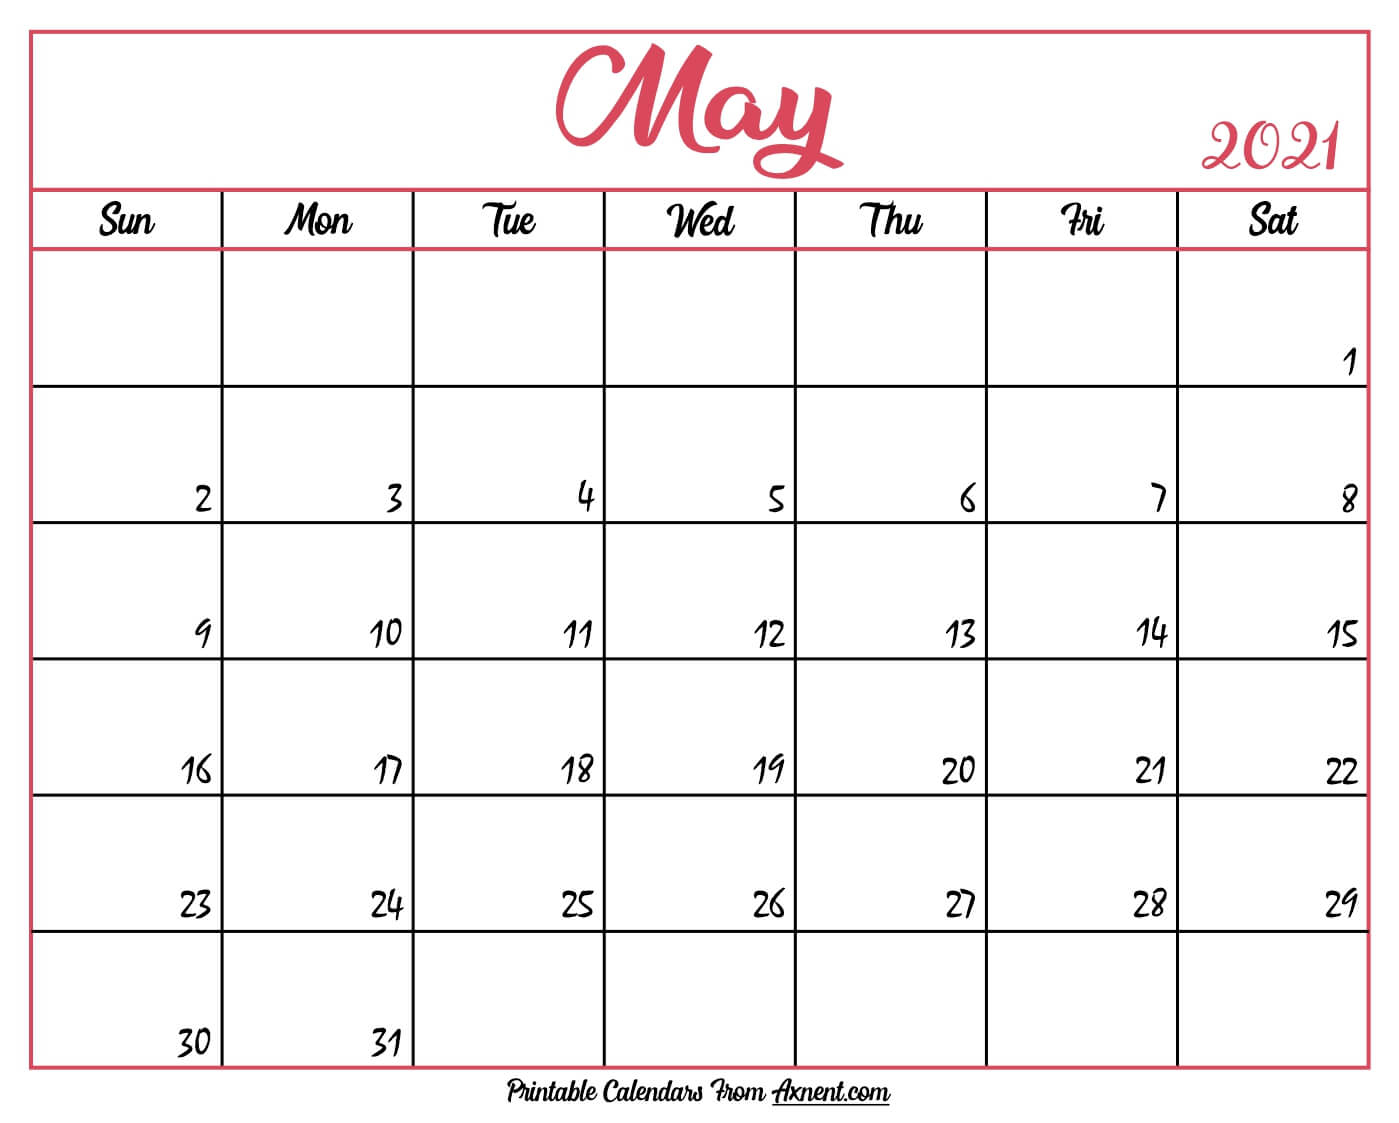 Printable May 2021 Calendar Template  Print Now for 2021 Writable Calendars By Month